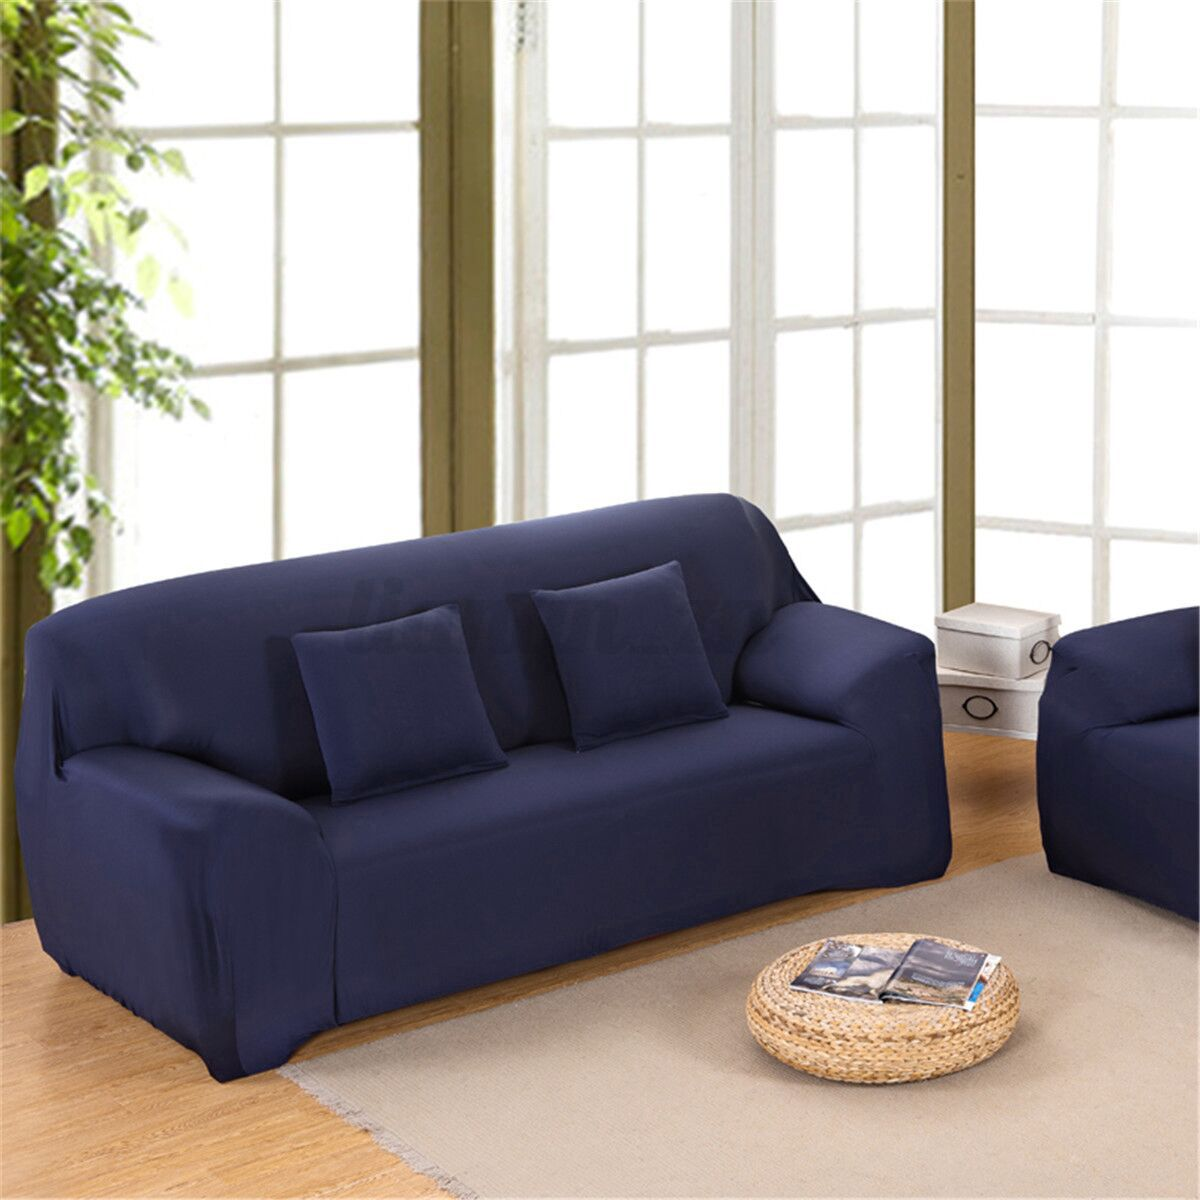 2 seater l shaped sofa bed chloe 1 3 4 shape stretch chair loveseat couch